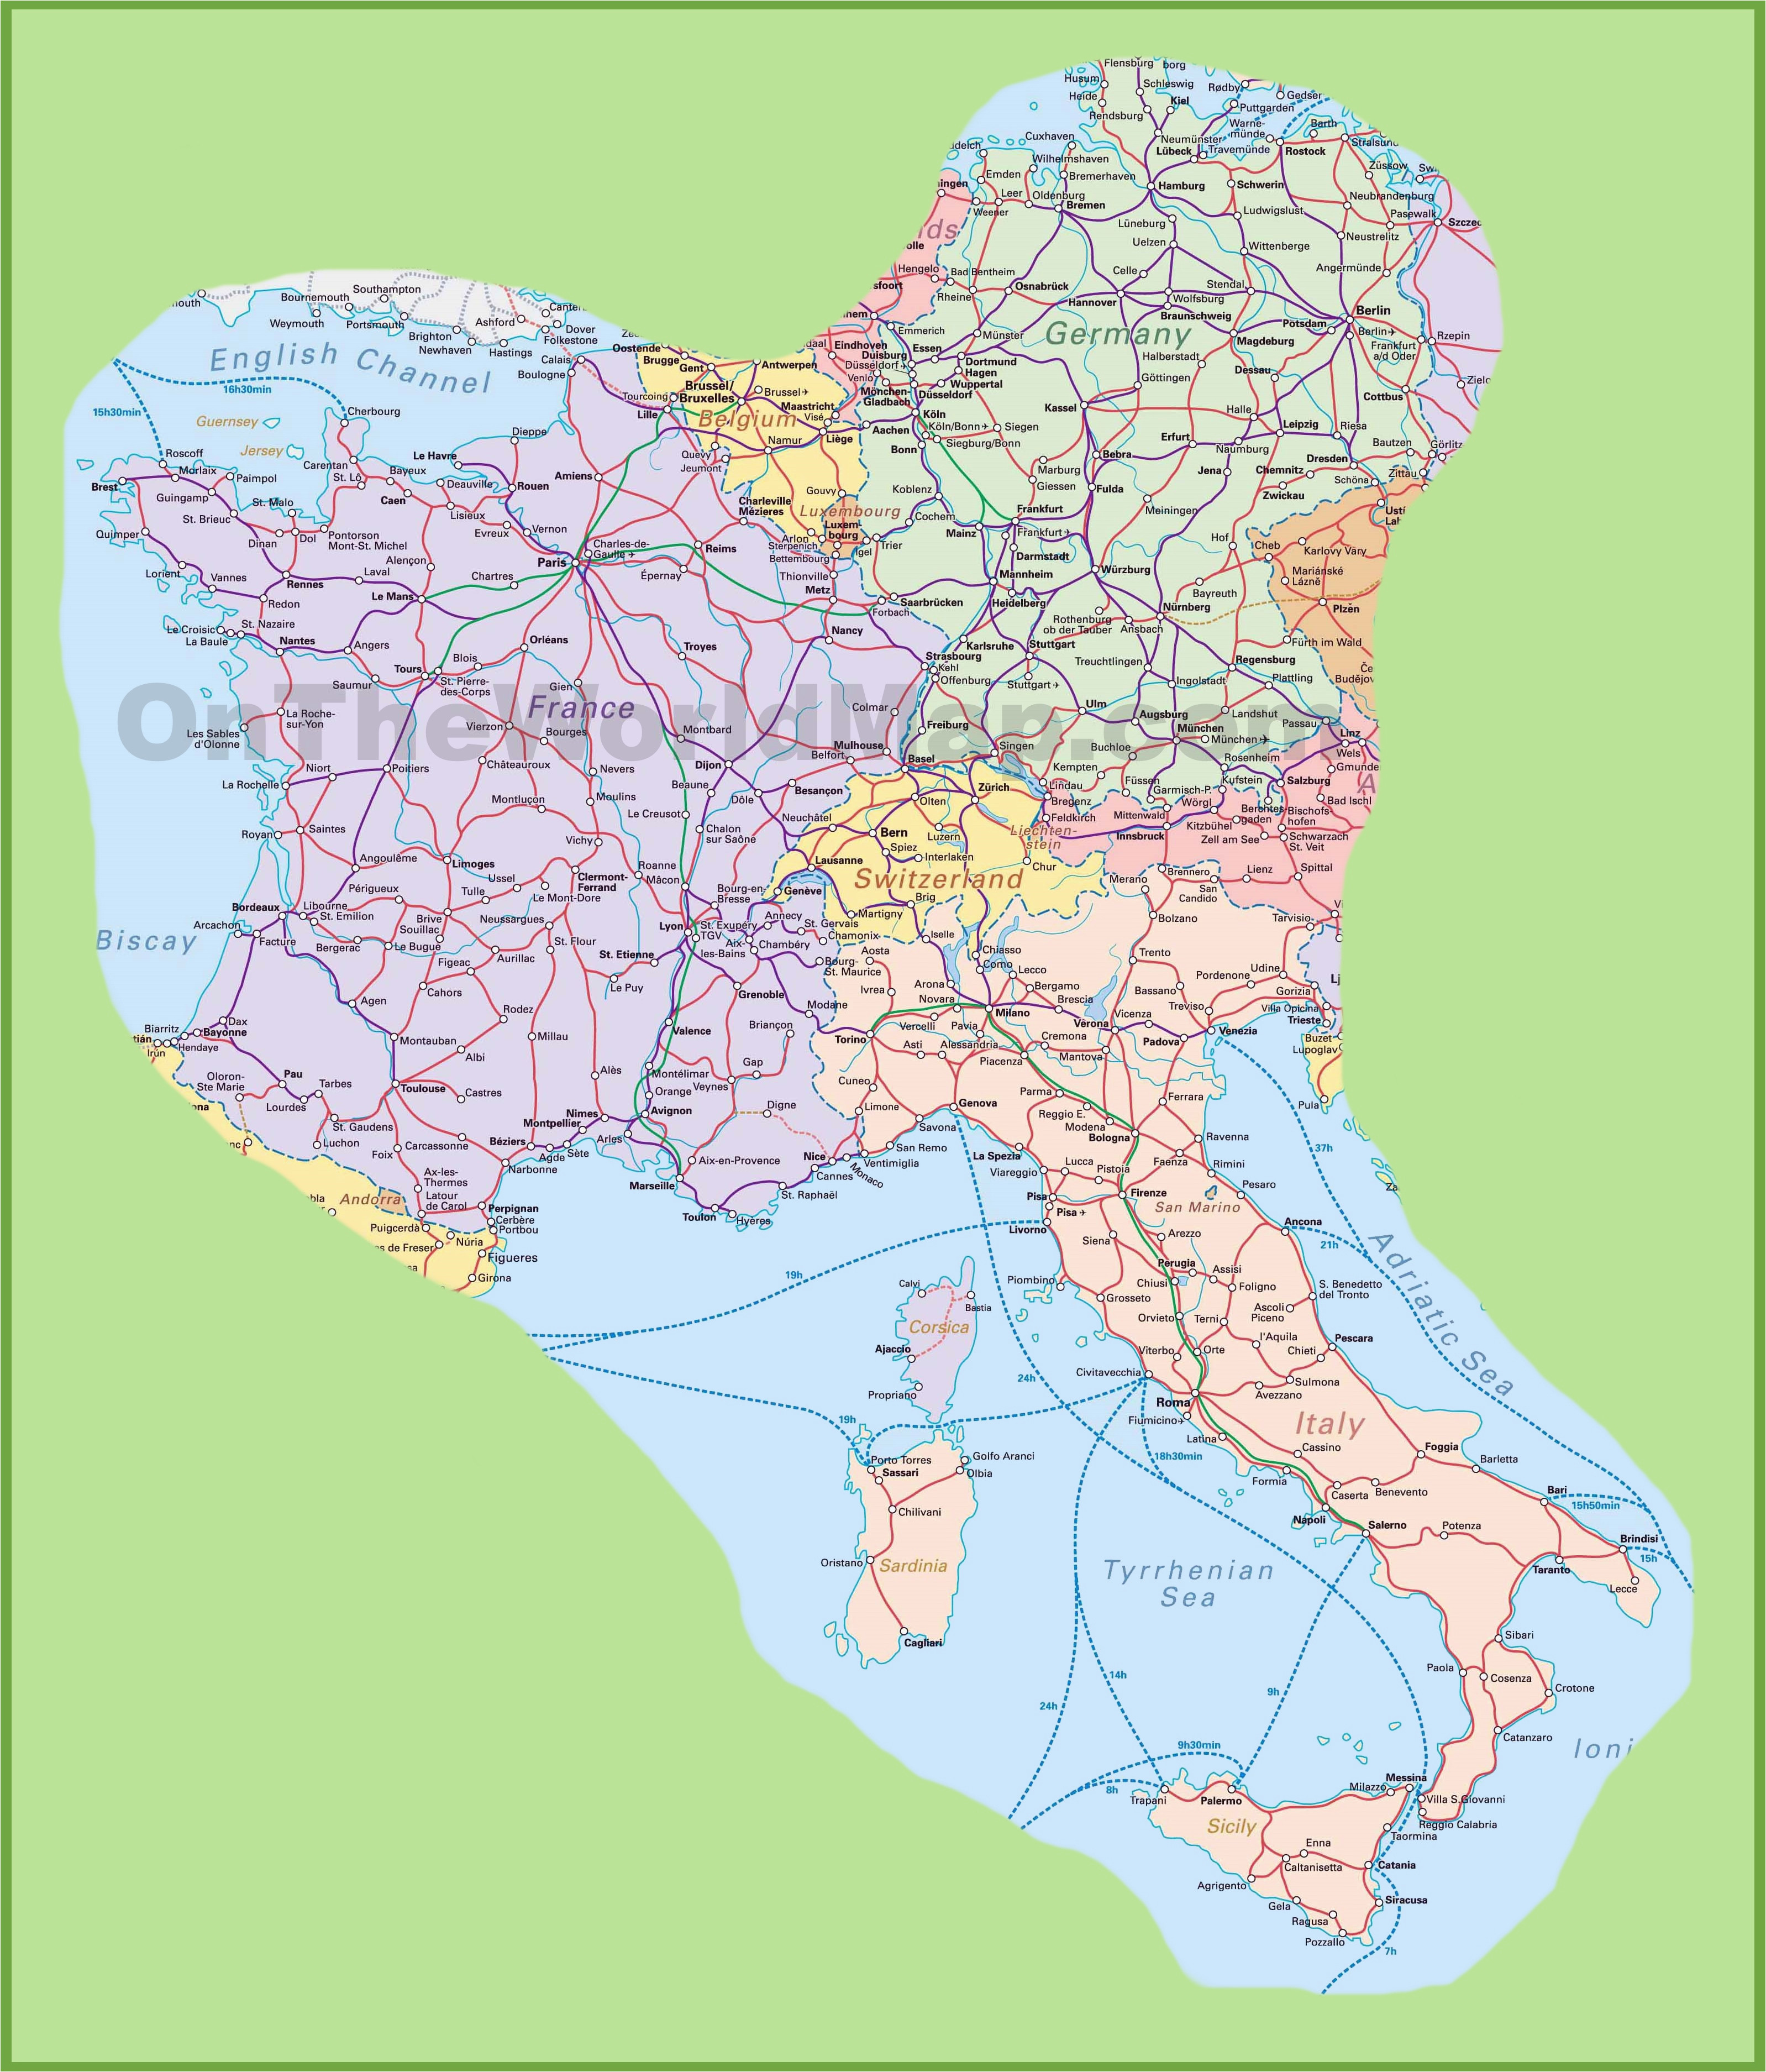 Map Of Germany Showing Major Cities.Map Of Italy Showing Major Cities Map Of Switzerland Italy Germany